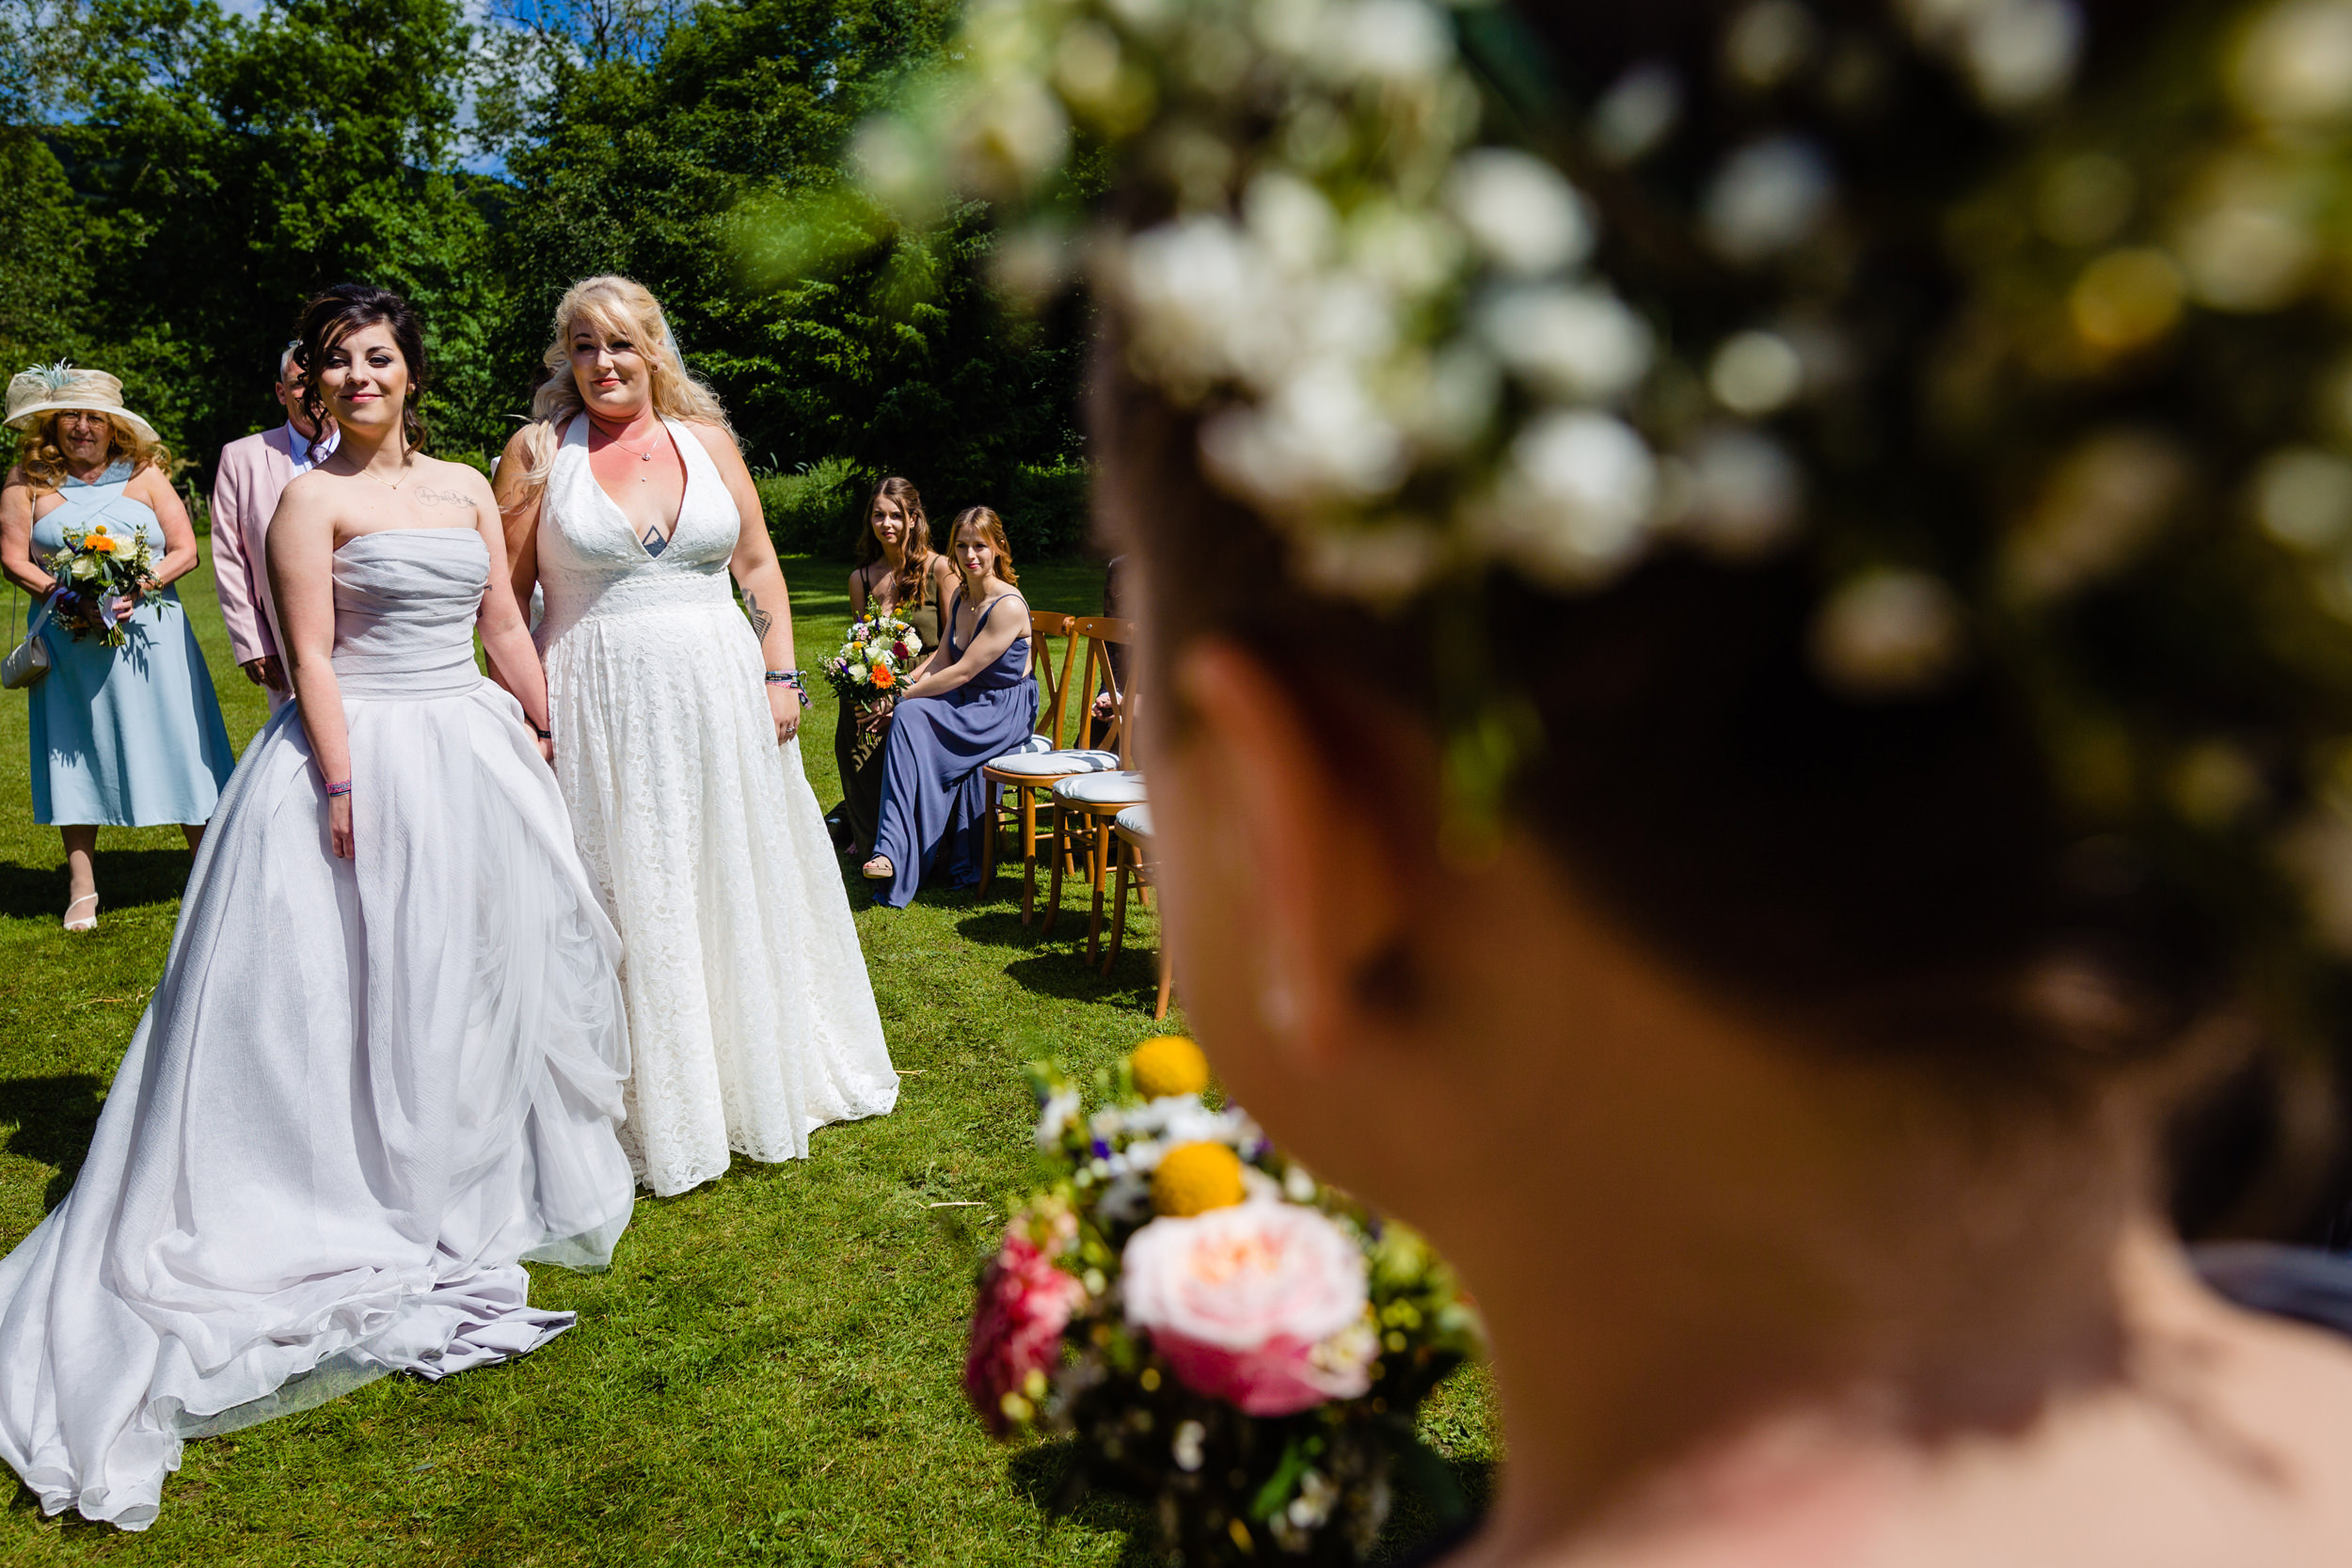 two brides listen to their bridesmaid's reading. plough inn, hathersage wedding photography by emma and rich.